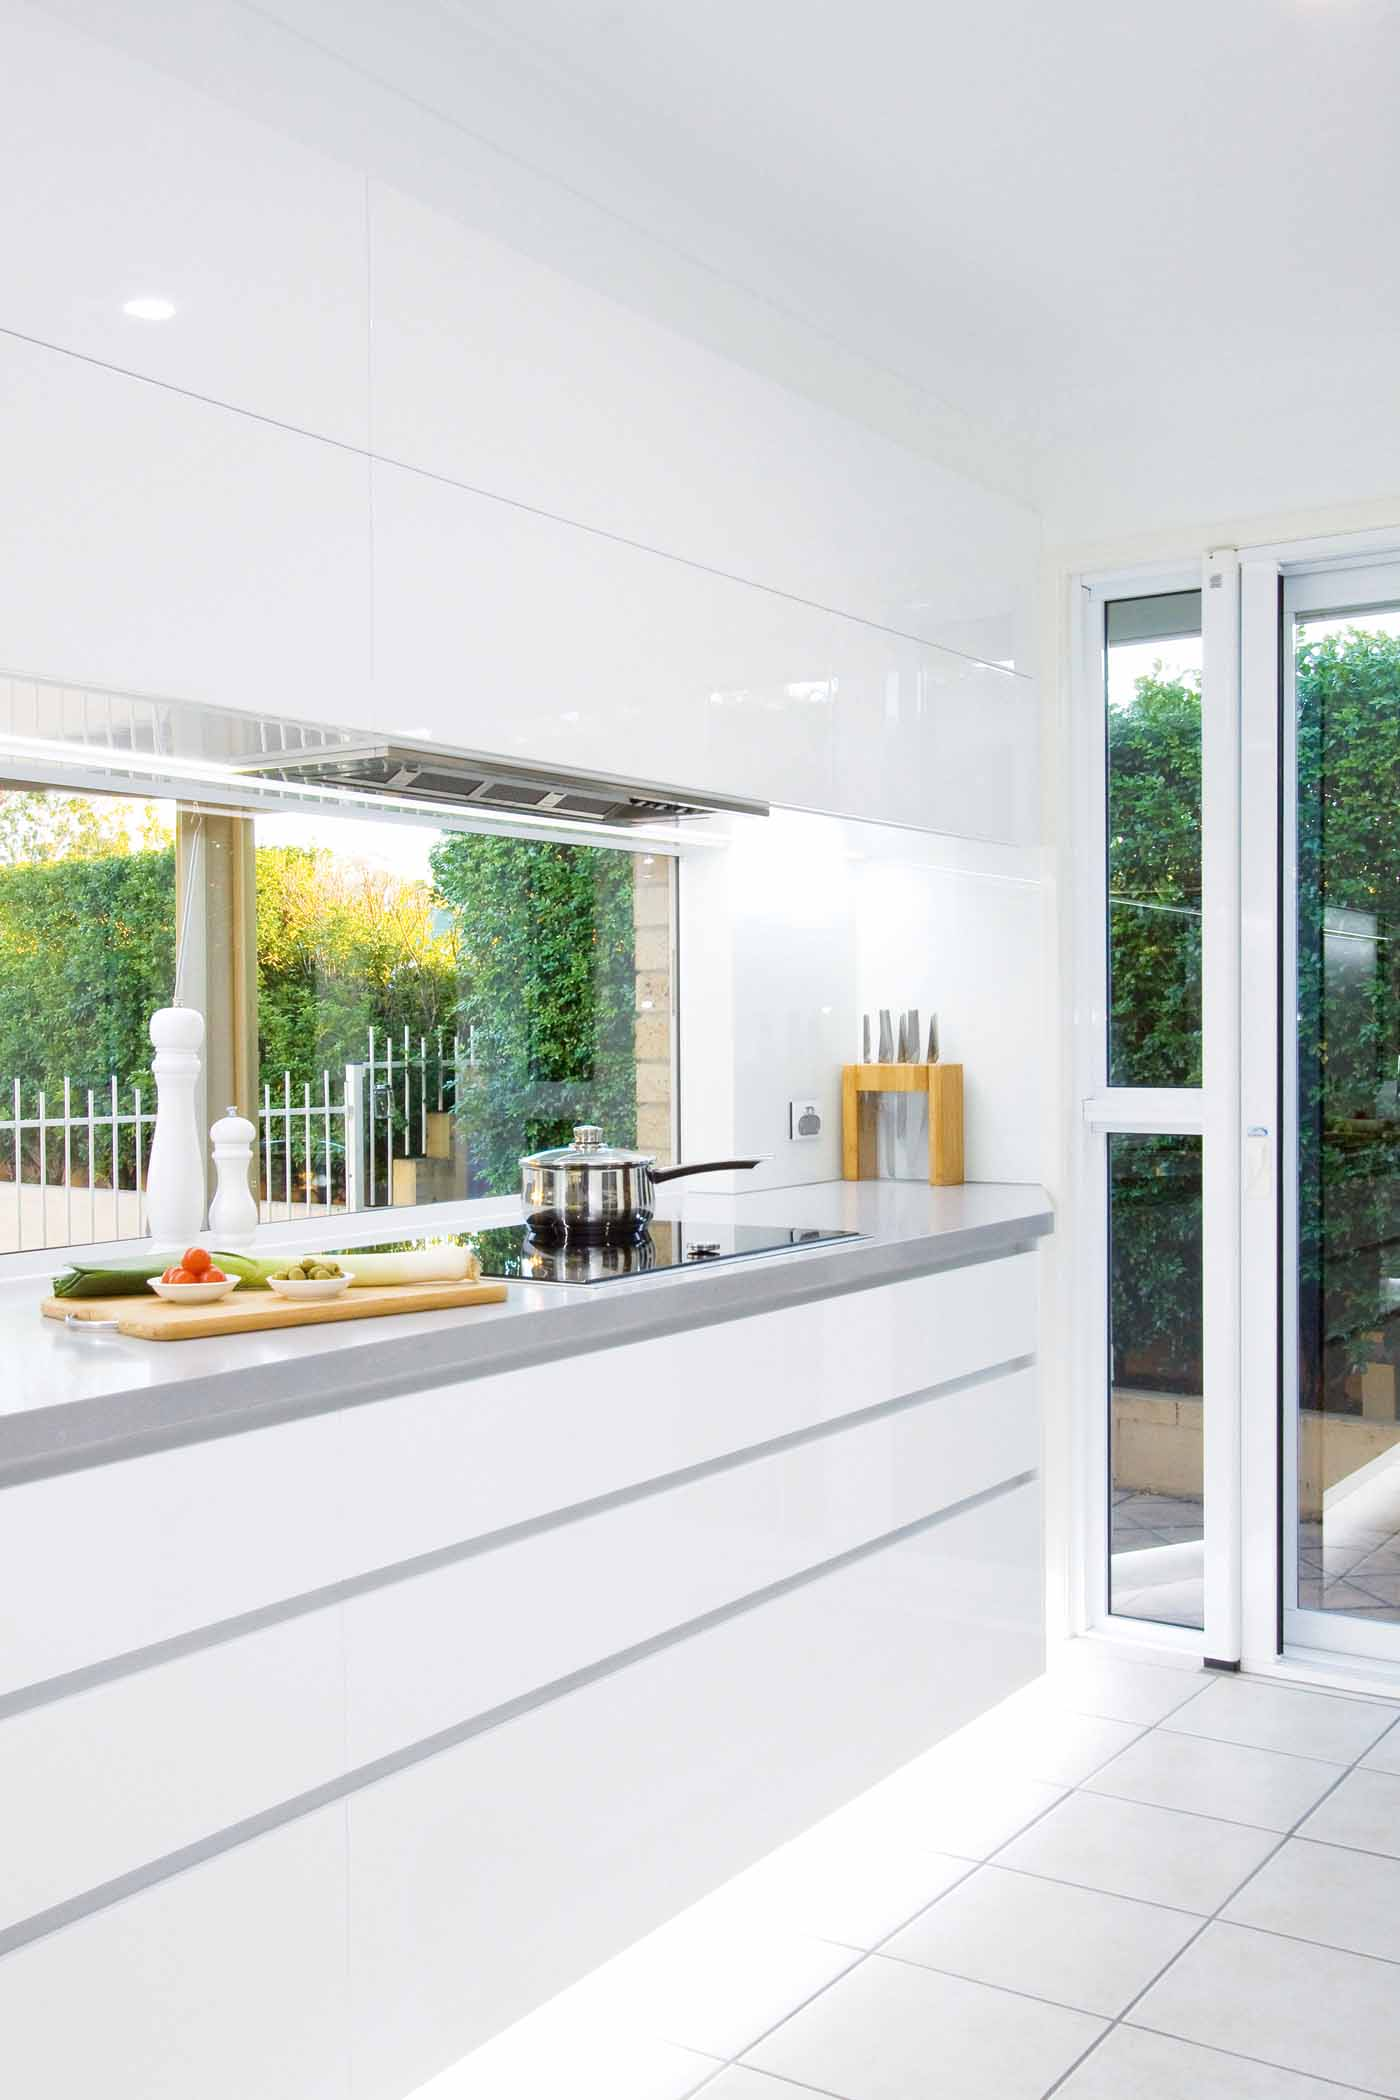 Light and bright: kitchen design